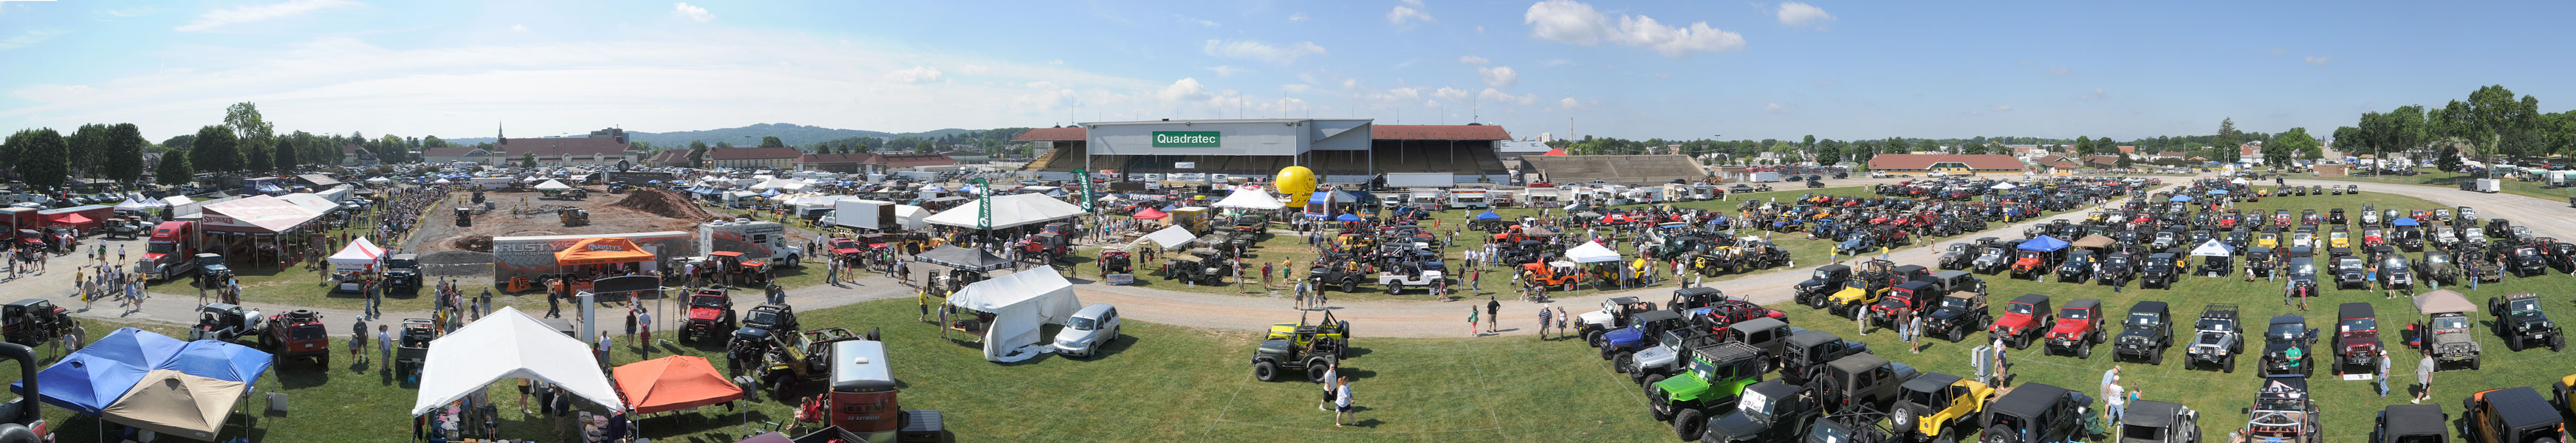 17th Annual All Breeds Jeep Show – ExtremeTerrain.com Blog